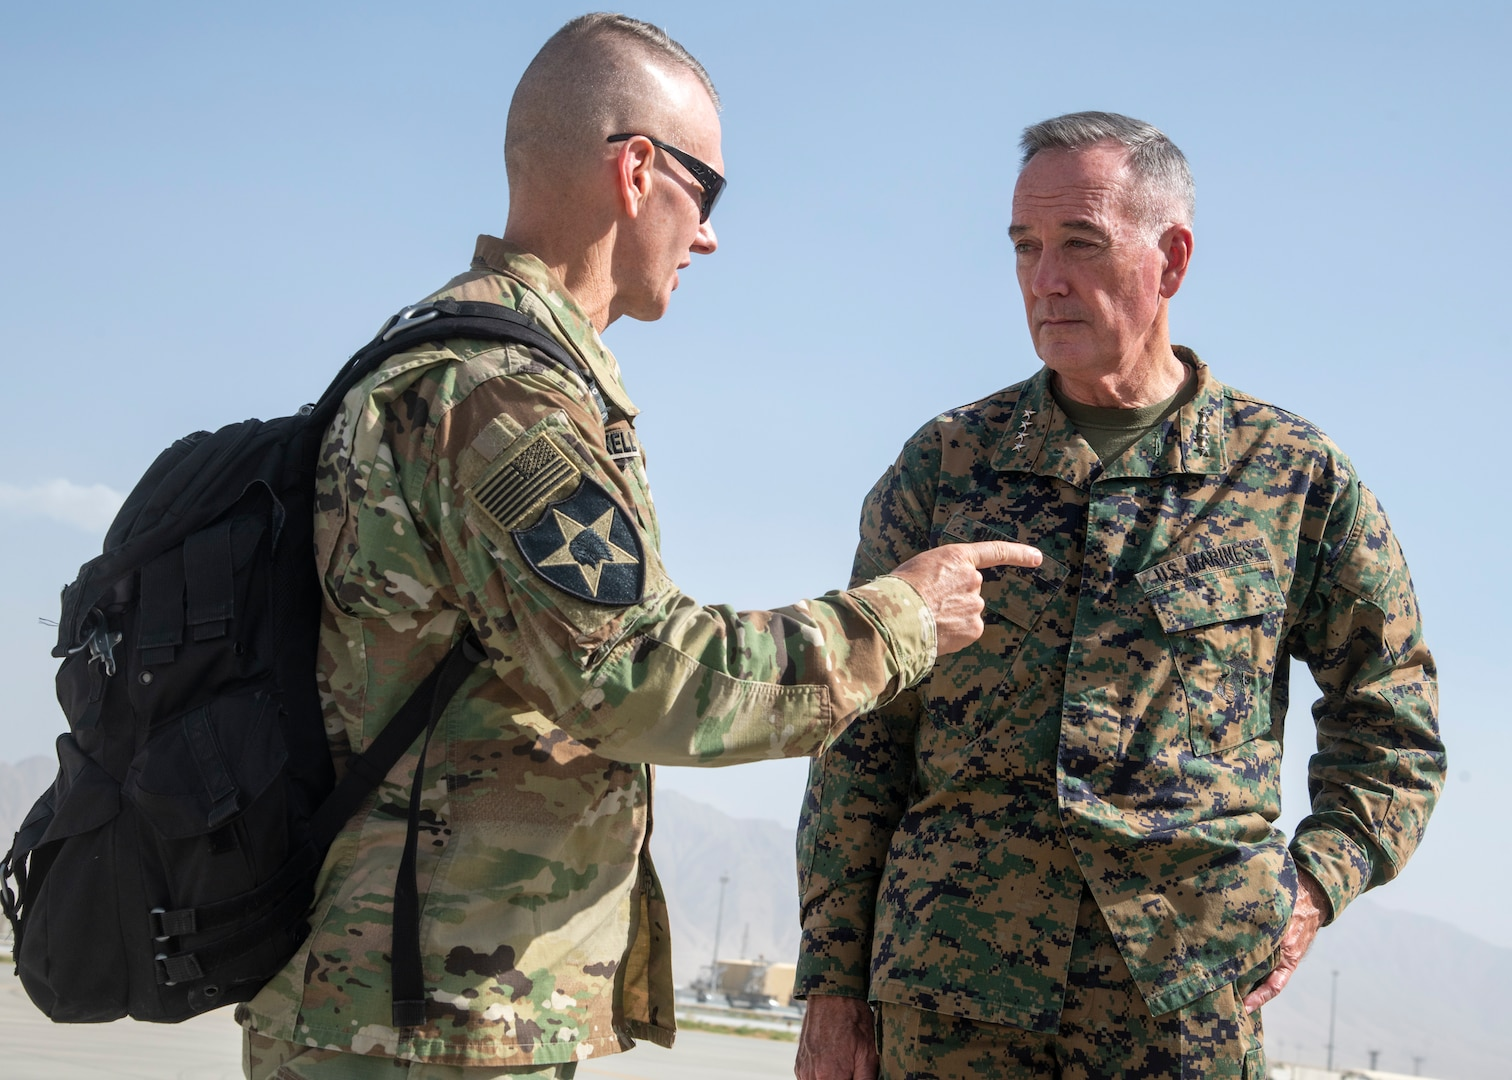 Marine Corps Gen. Joe Dunford, chairman of the Joint Chiefs of Staff, speaks with Army Command Sgt. Maj. John W. Troxell, senior enlisted advisor to the chairman on the Joint Chiefs of Staff at Bagram Airfield, Sept. 7, 2018.